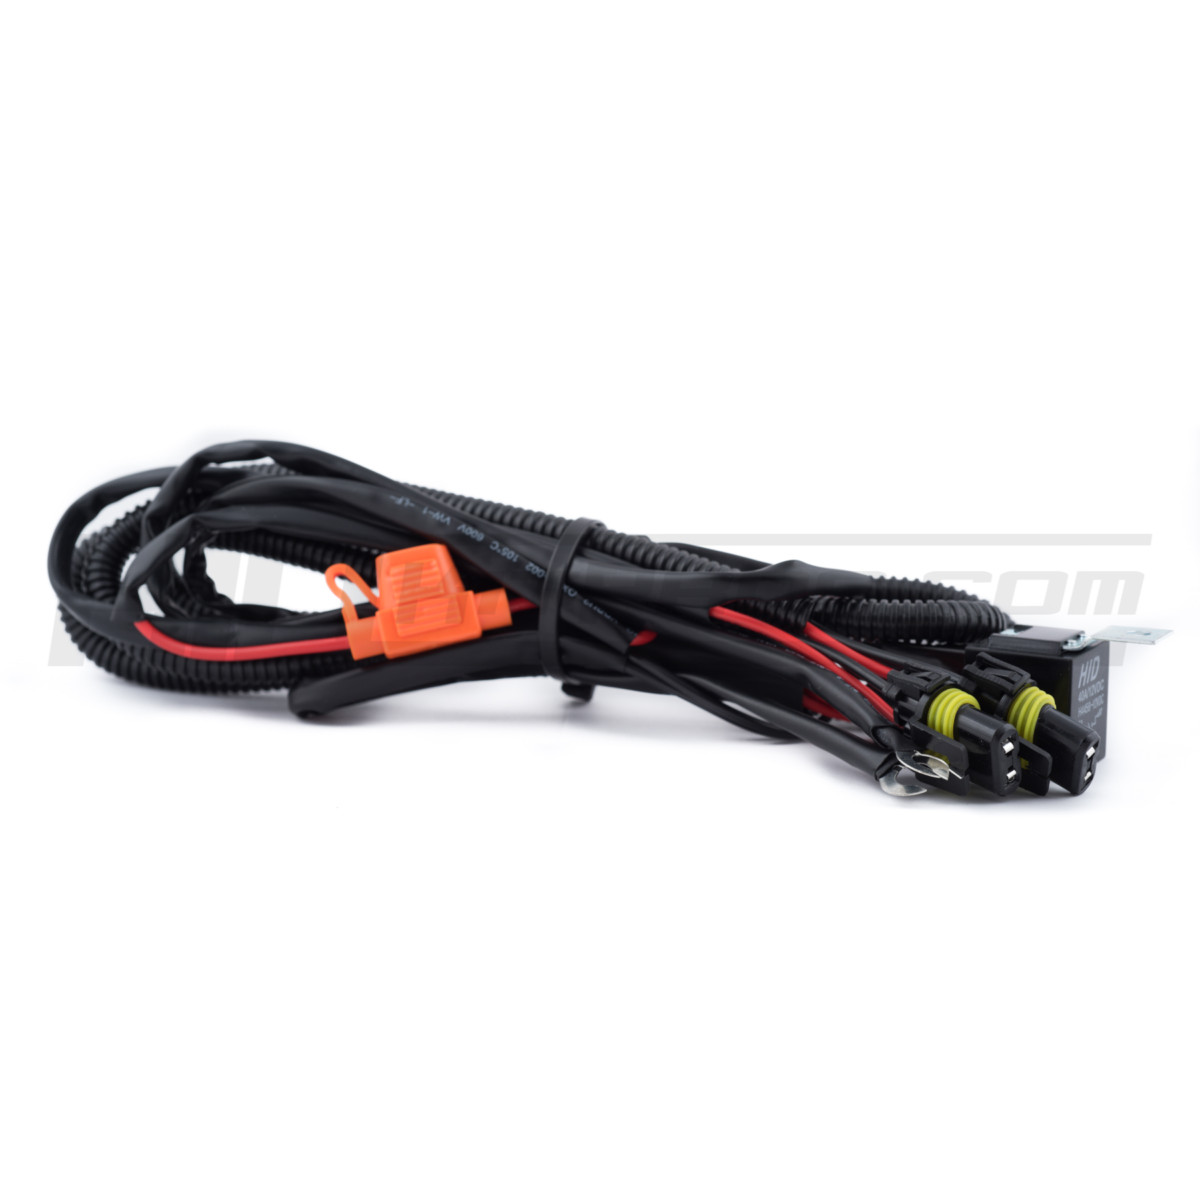 hkp capacitor hid relay wiring harness hid kit pros hkp capacitor hid relay wiring harness